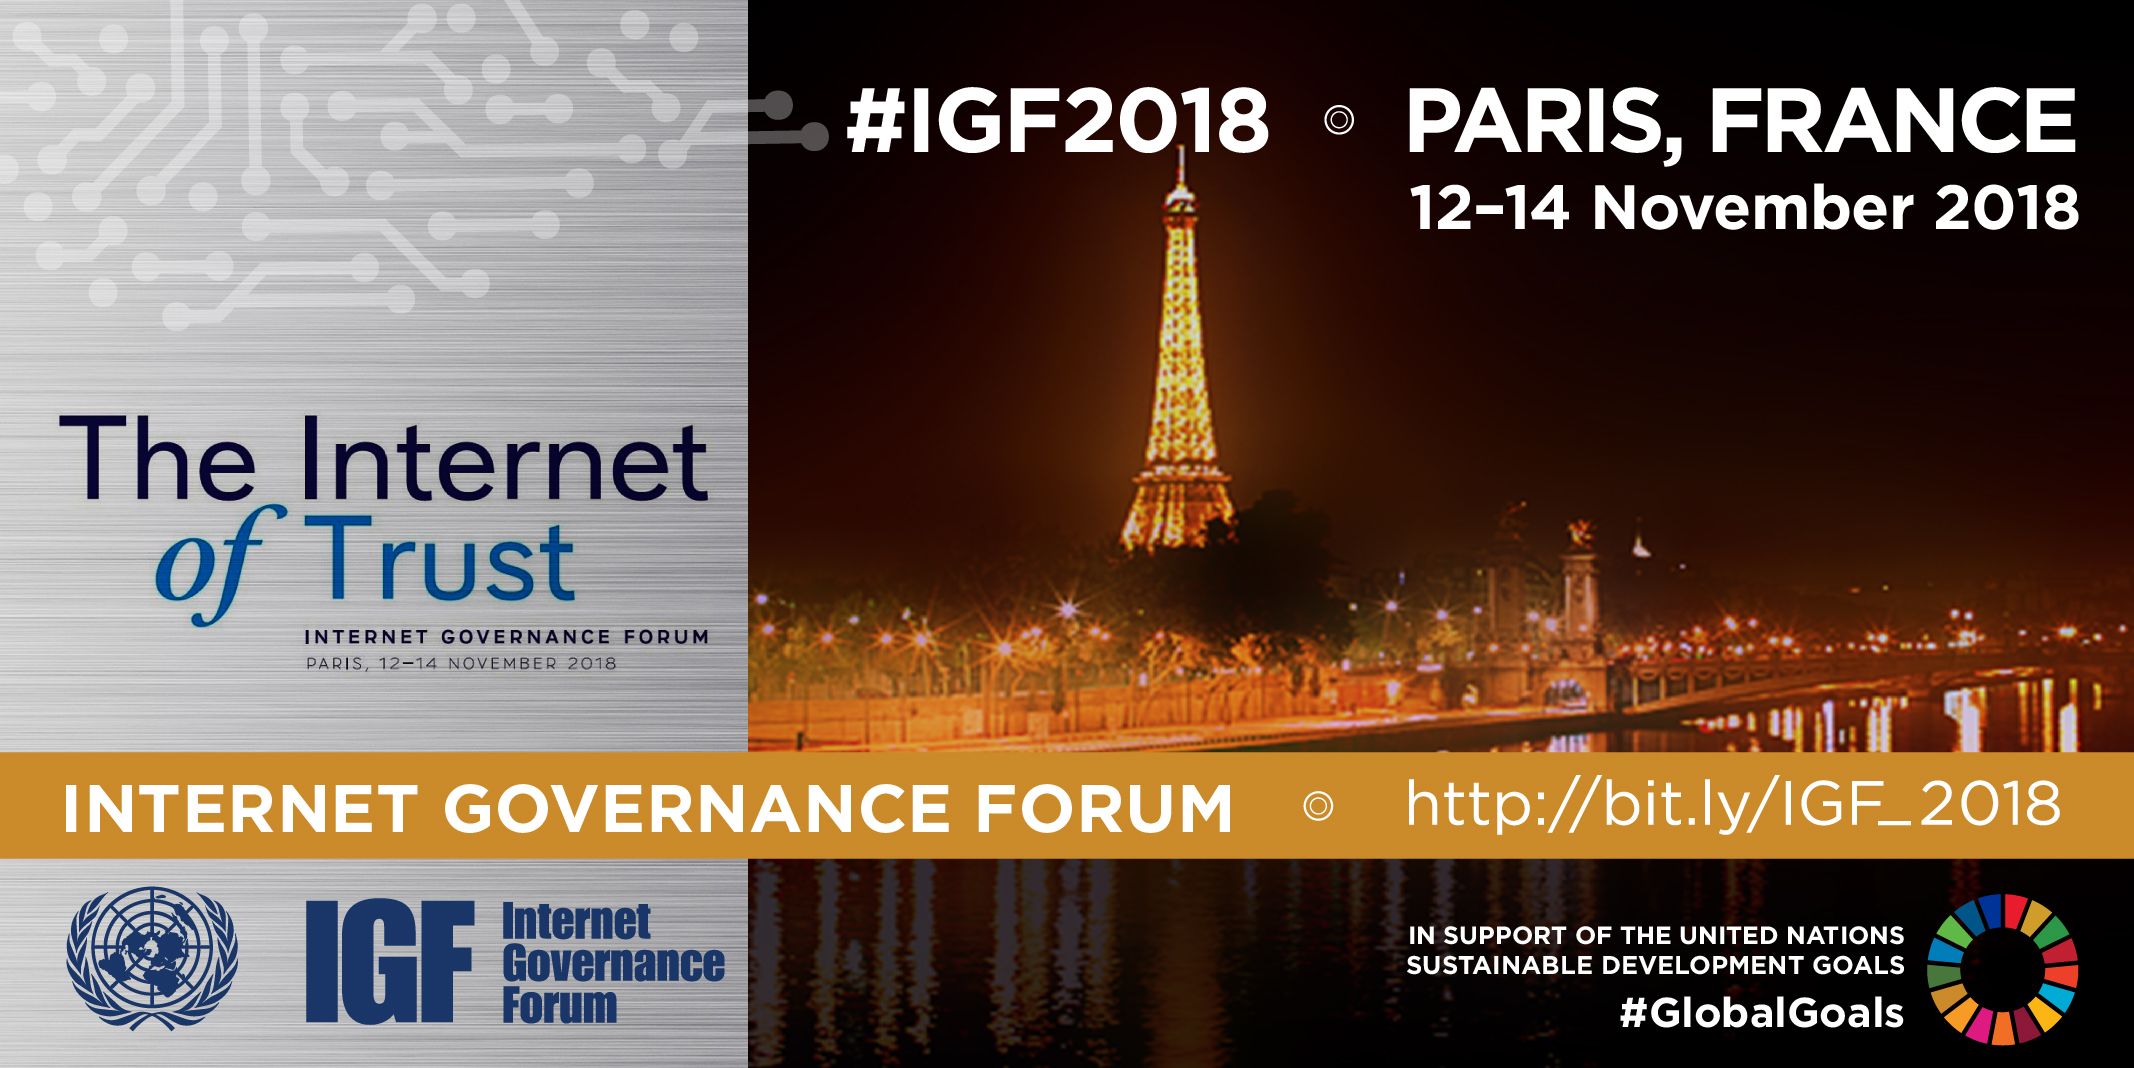 IGF card 2 Paris